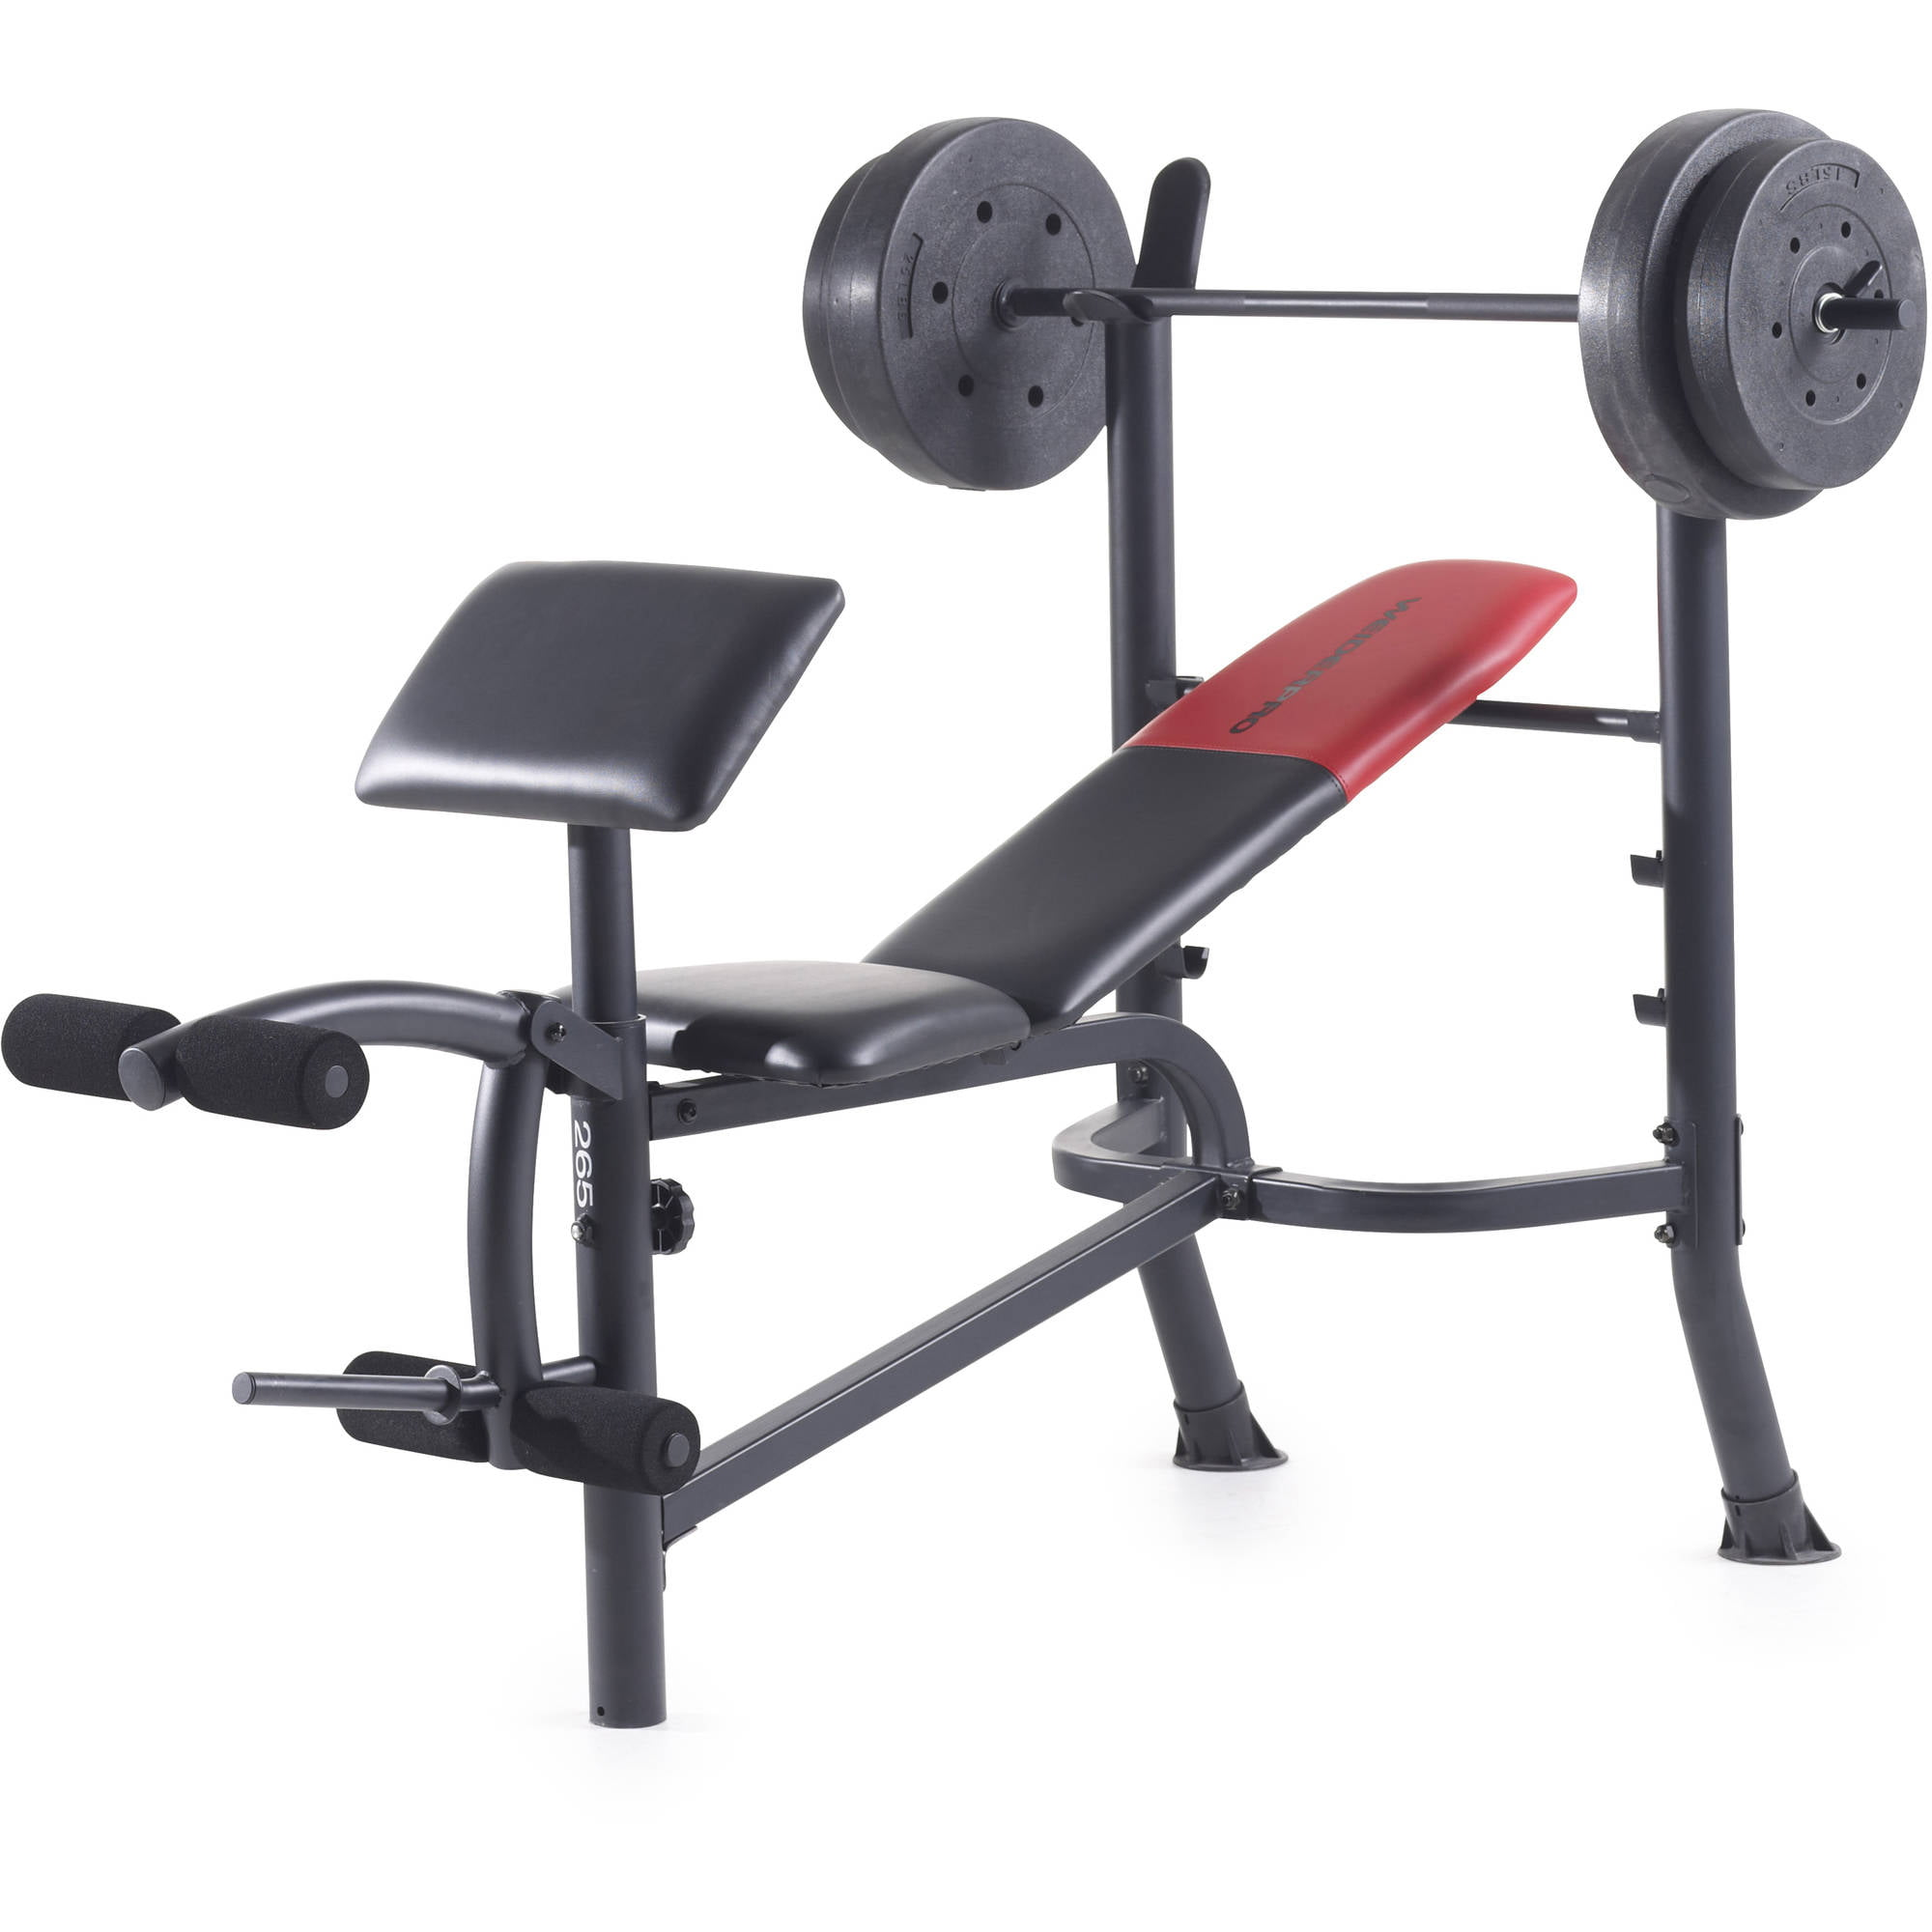 flat with leficoflbepr competition fitness press weight bench benches legend weights